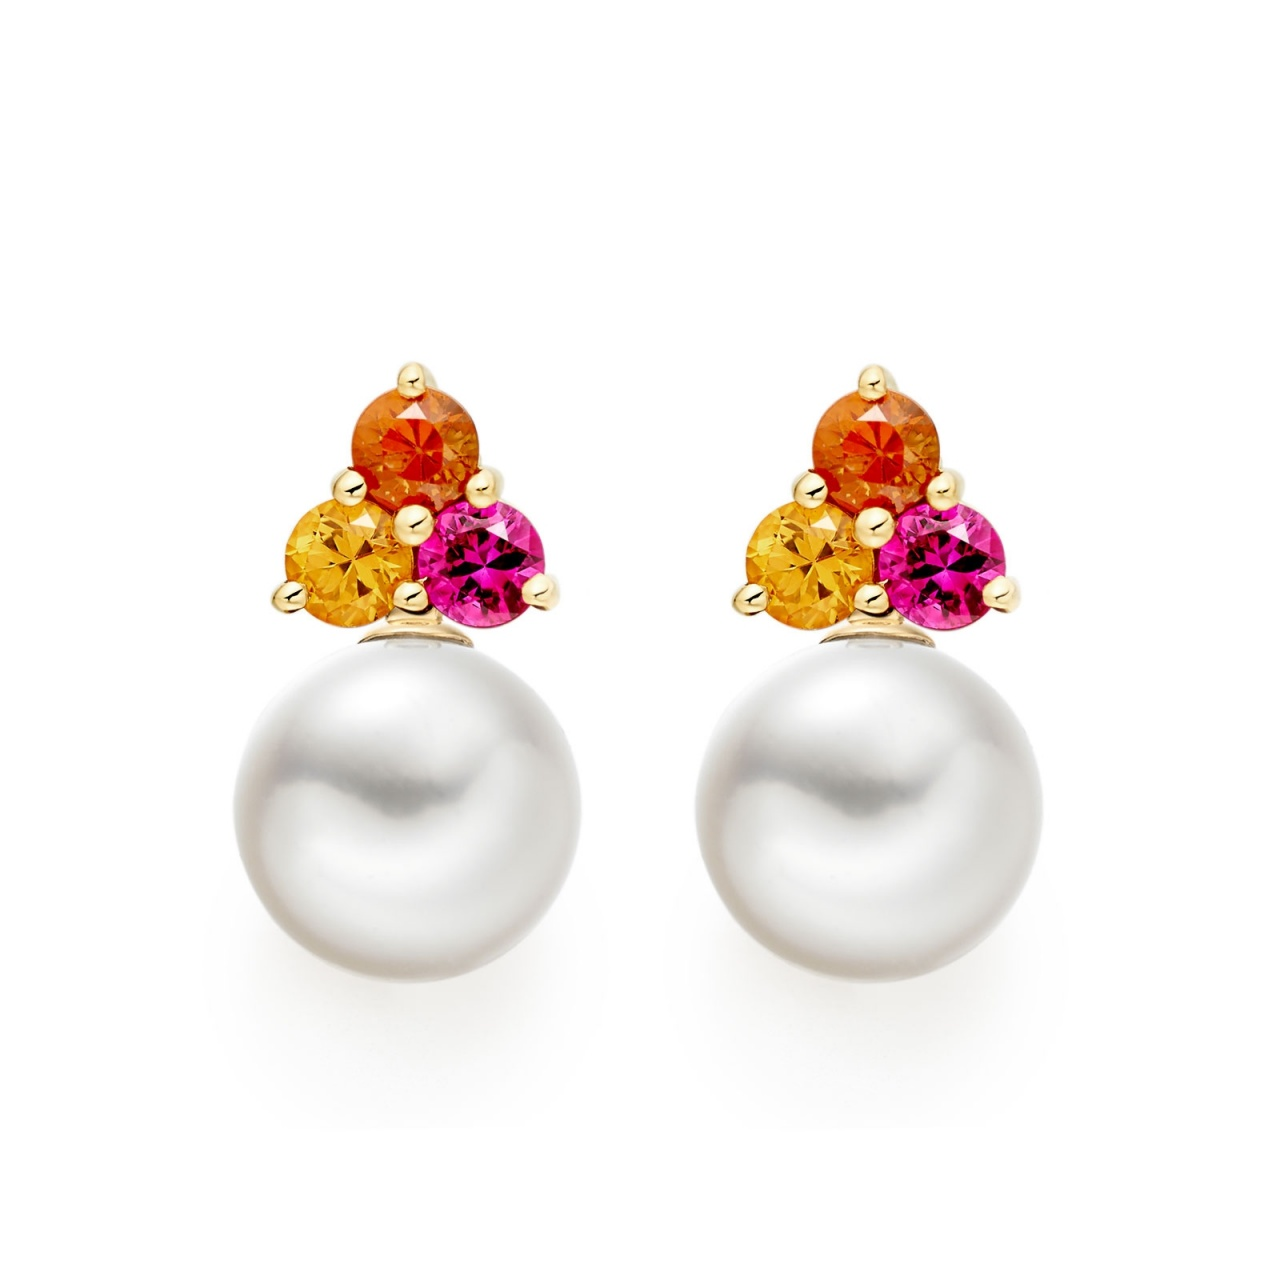 Astral Blaze Studs in Yellow Gold with Akoya Pearls-AEWRYG1339-1